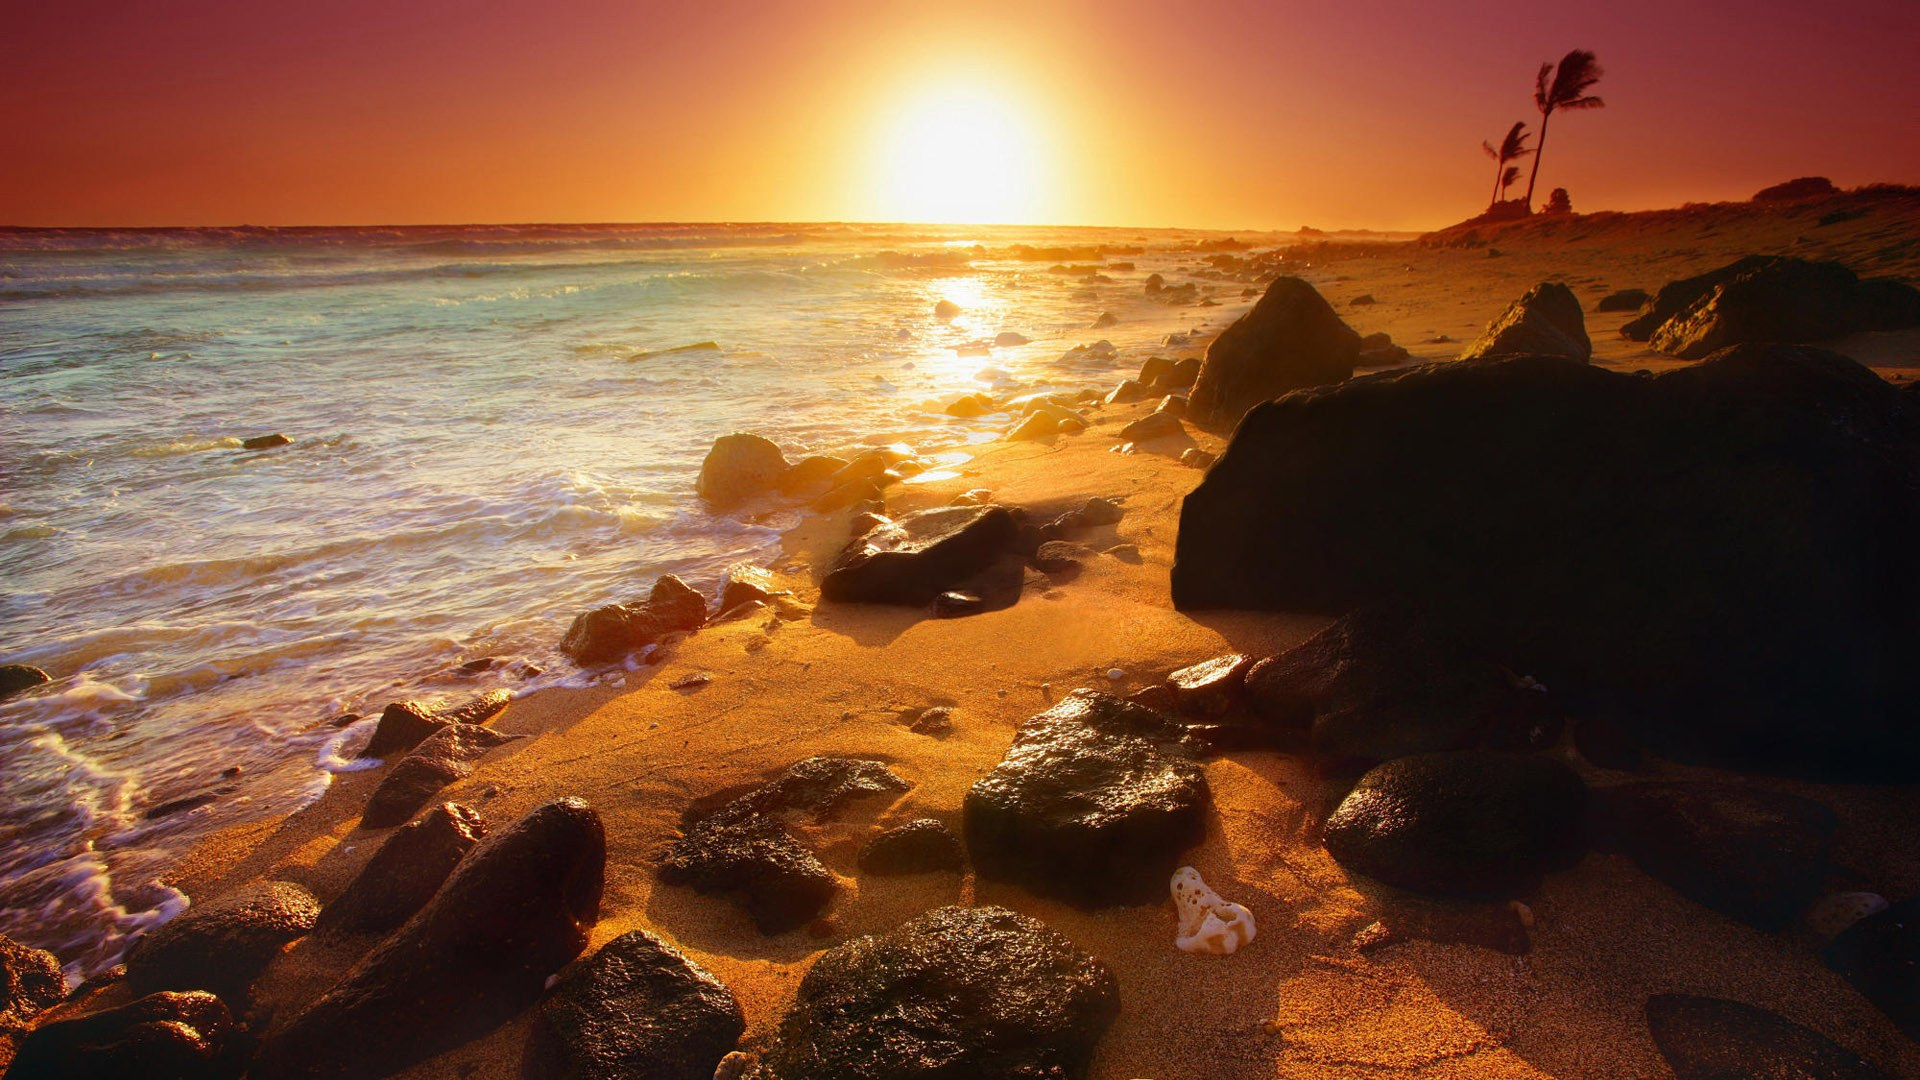 For 1080p widescreen lcd monitor hd beautiful landscape - Beach hd wallpapers 1080p ...